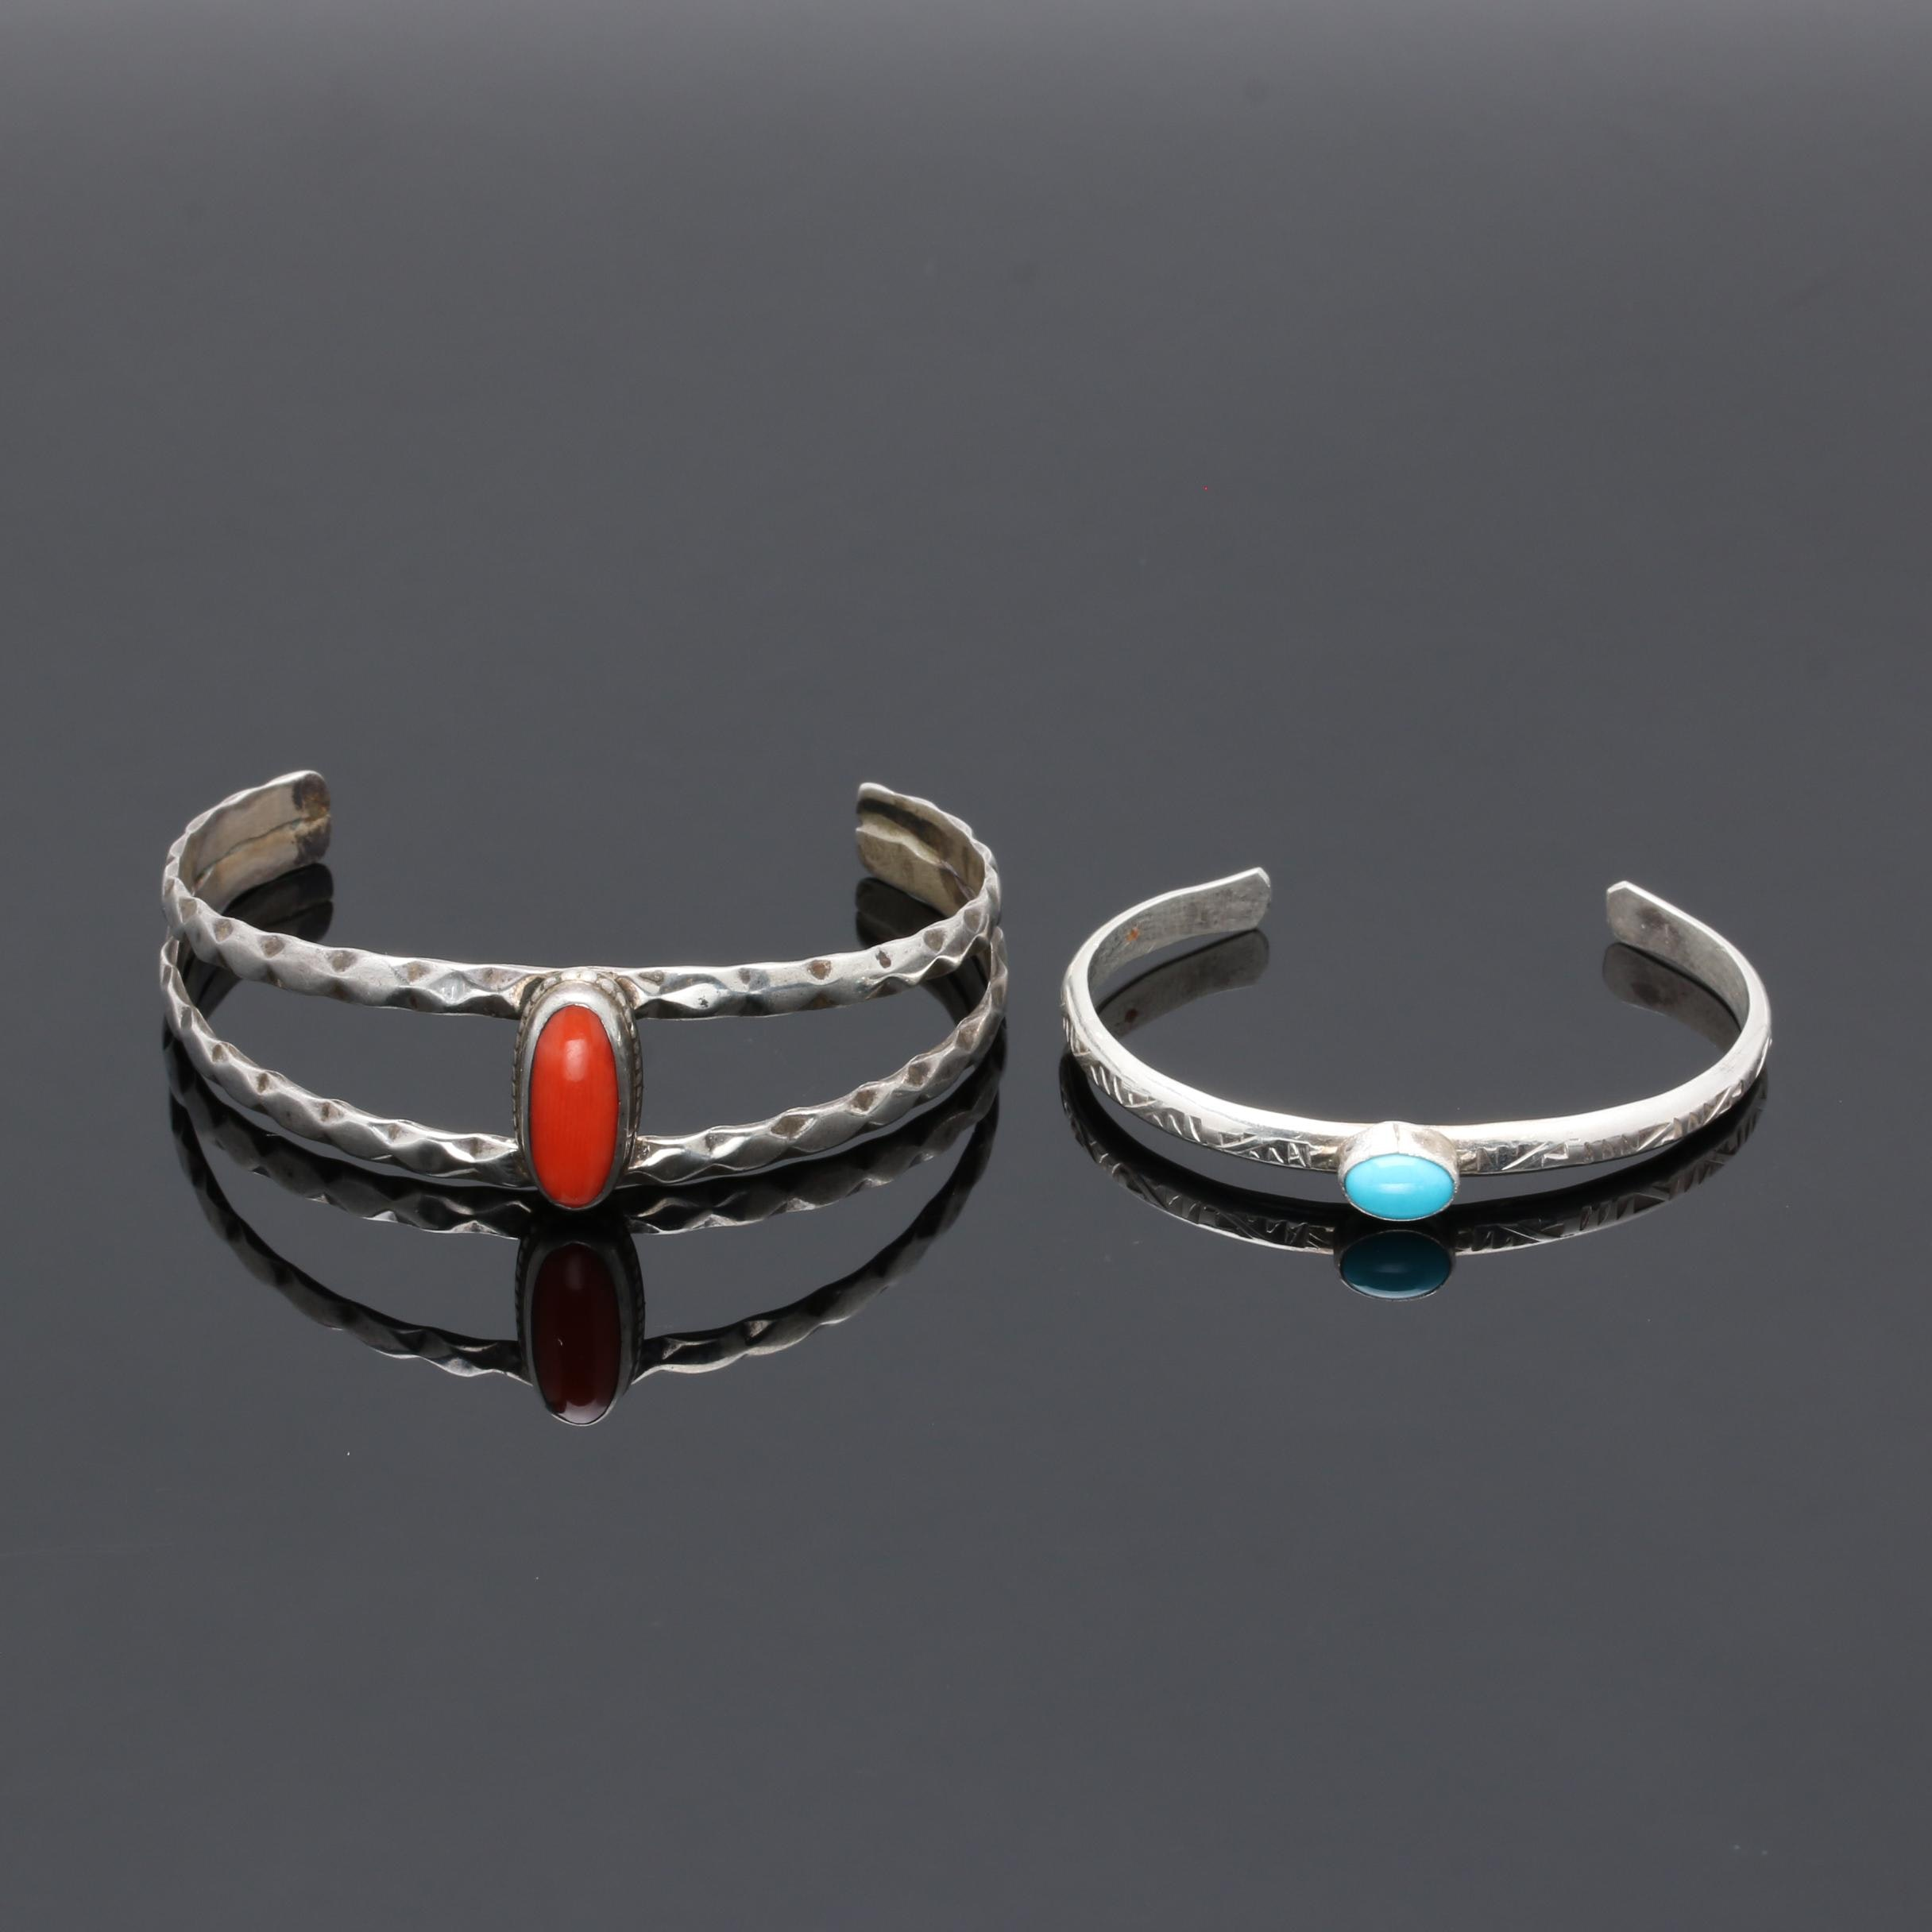 Southwestern Style Sterling Silver Turquoise and Coral Cuff Bracelets